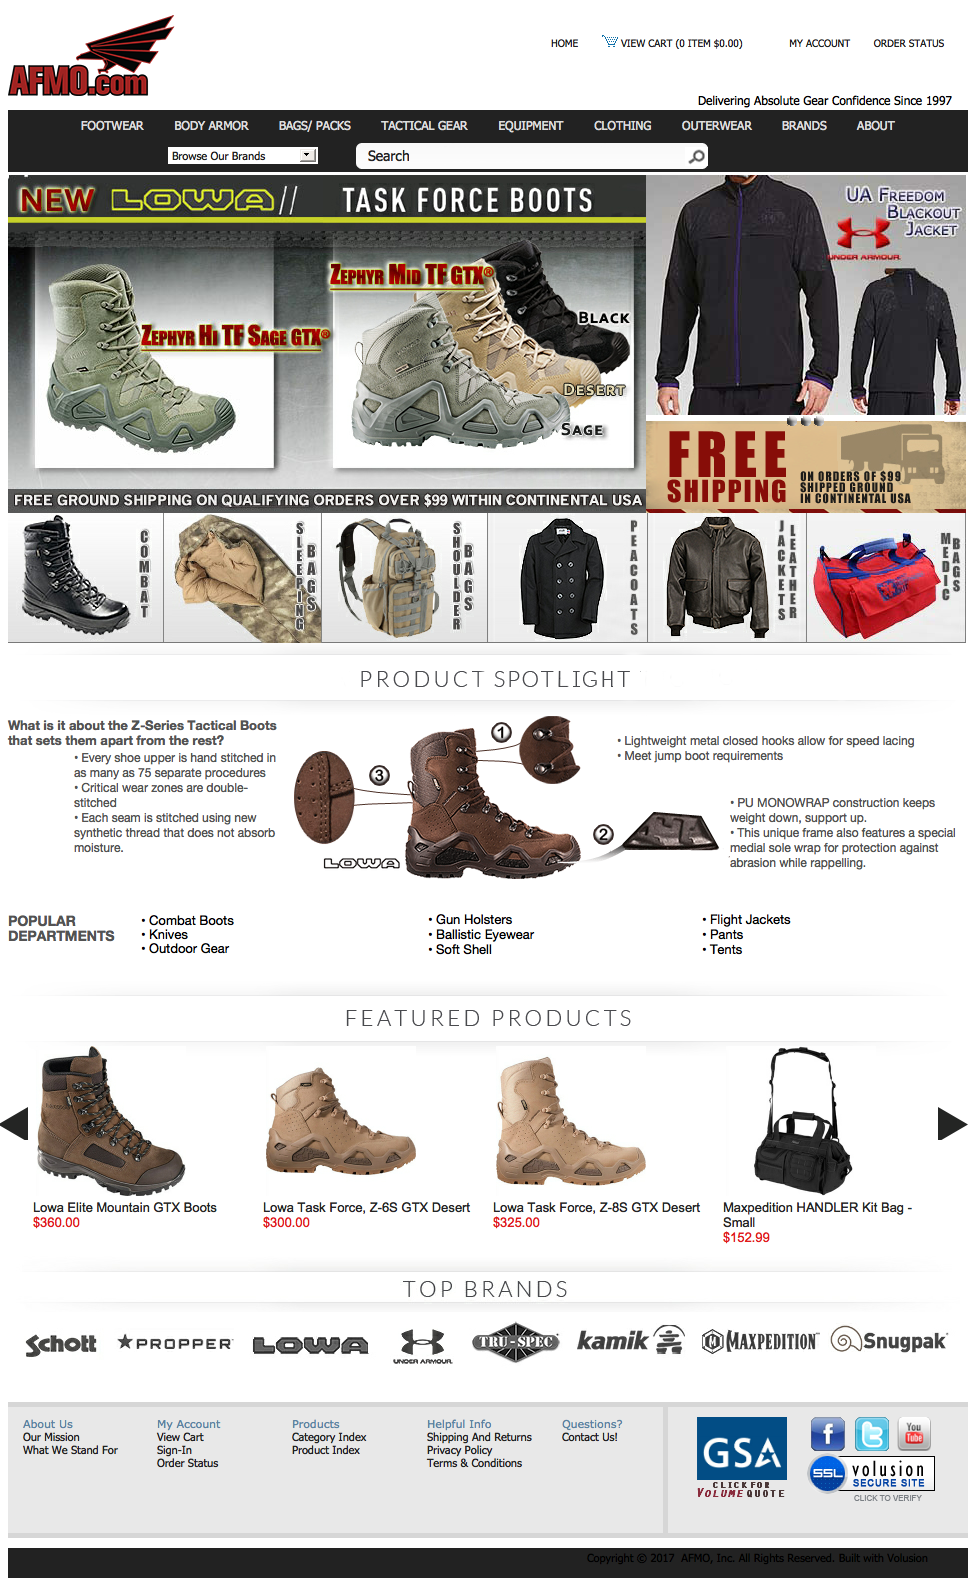 Armed Forces Merchandise Outlet